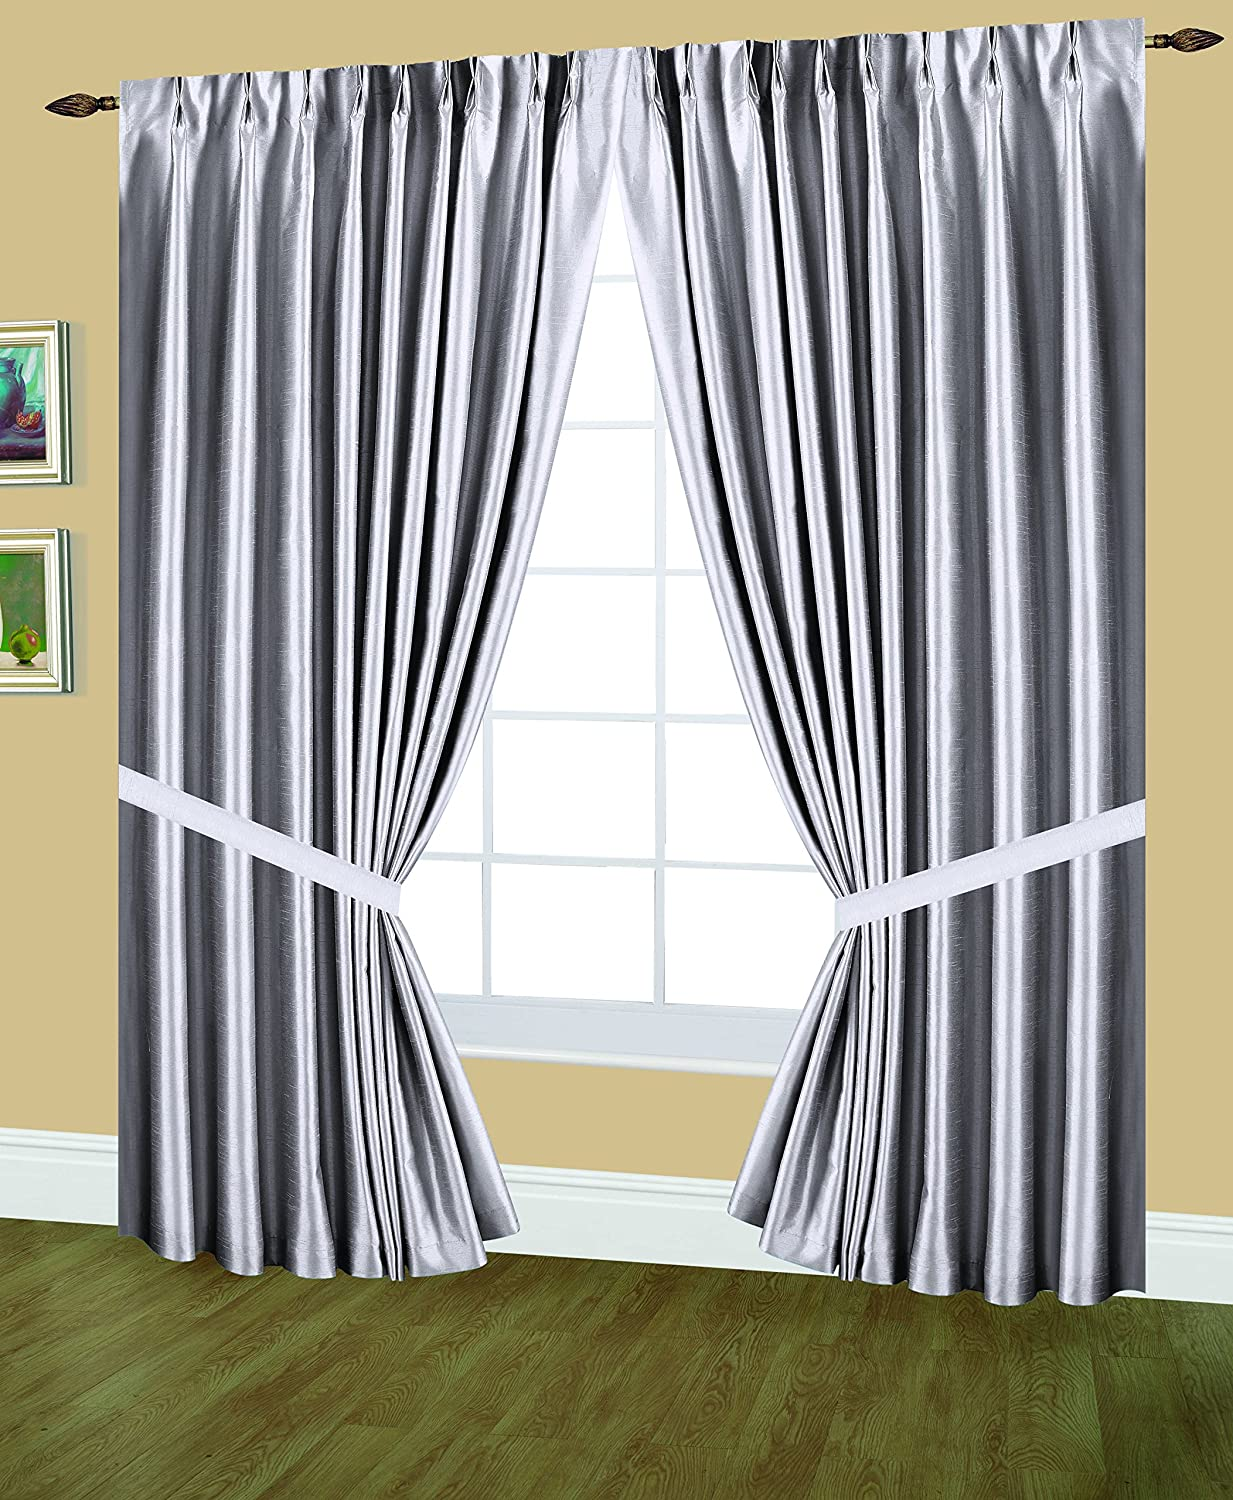 White Editex Home Textiles Elaine Lined Pinch Pleated Window Curtain 96 by 95-Inch